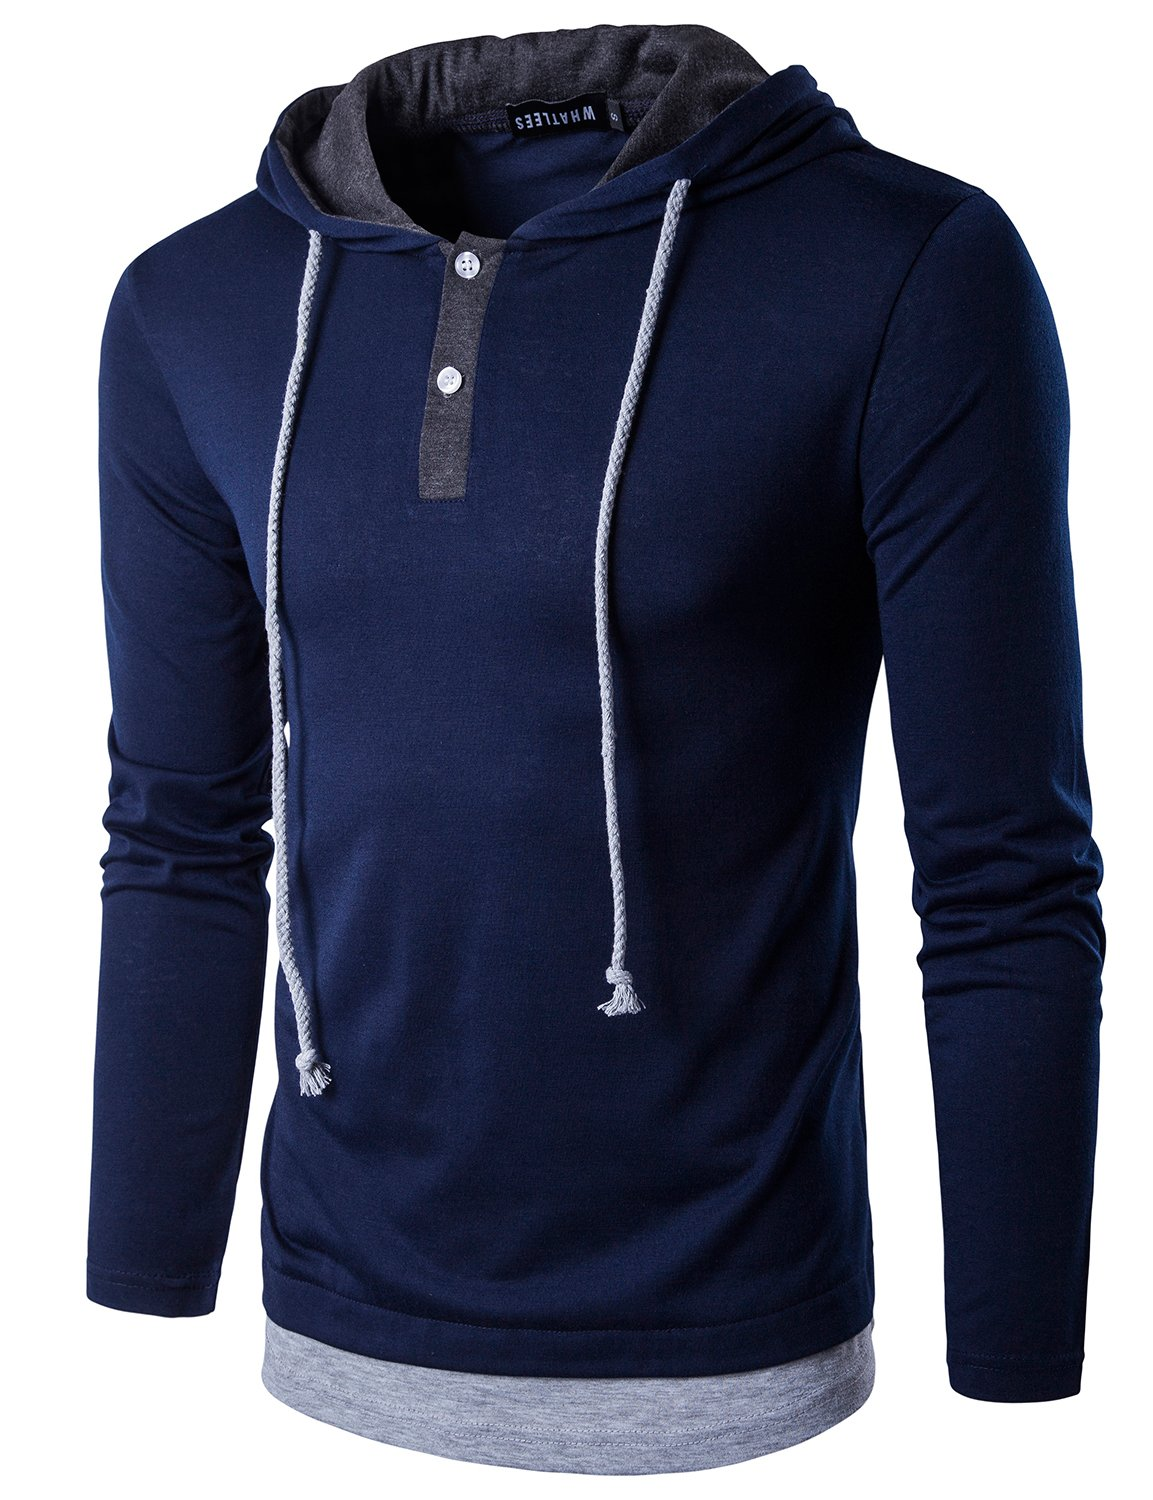 WHATLEES Mens Hipster Slim Fit Long Sleeve Extended Hem Henley T Shirt with Hood T15 Navy Blue Large